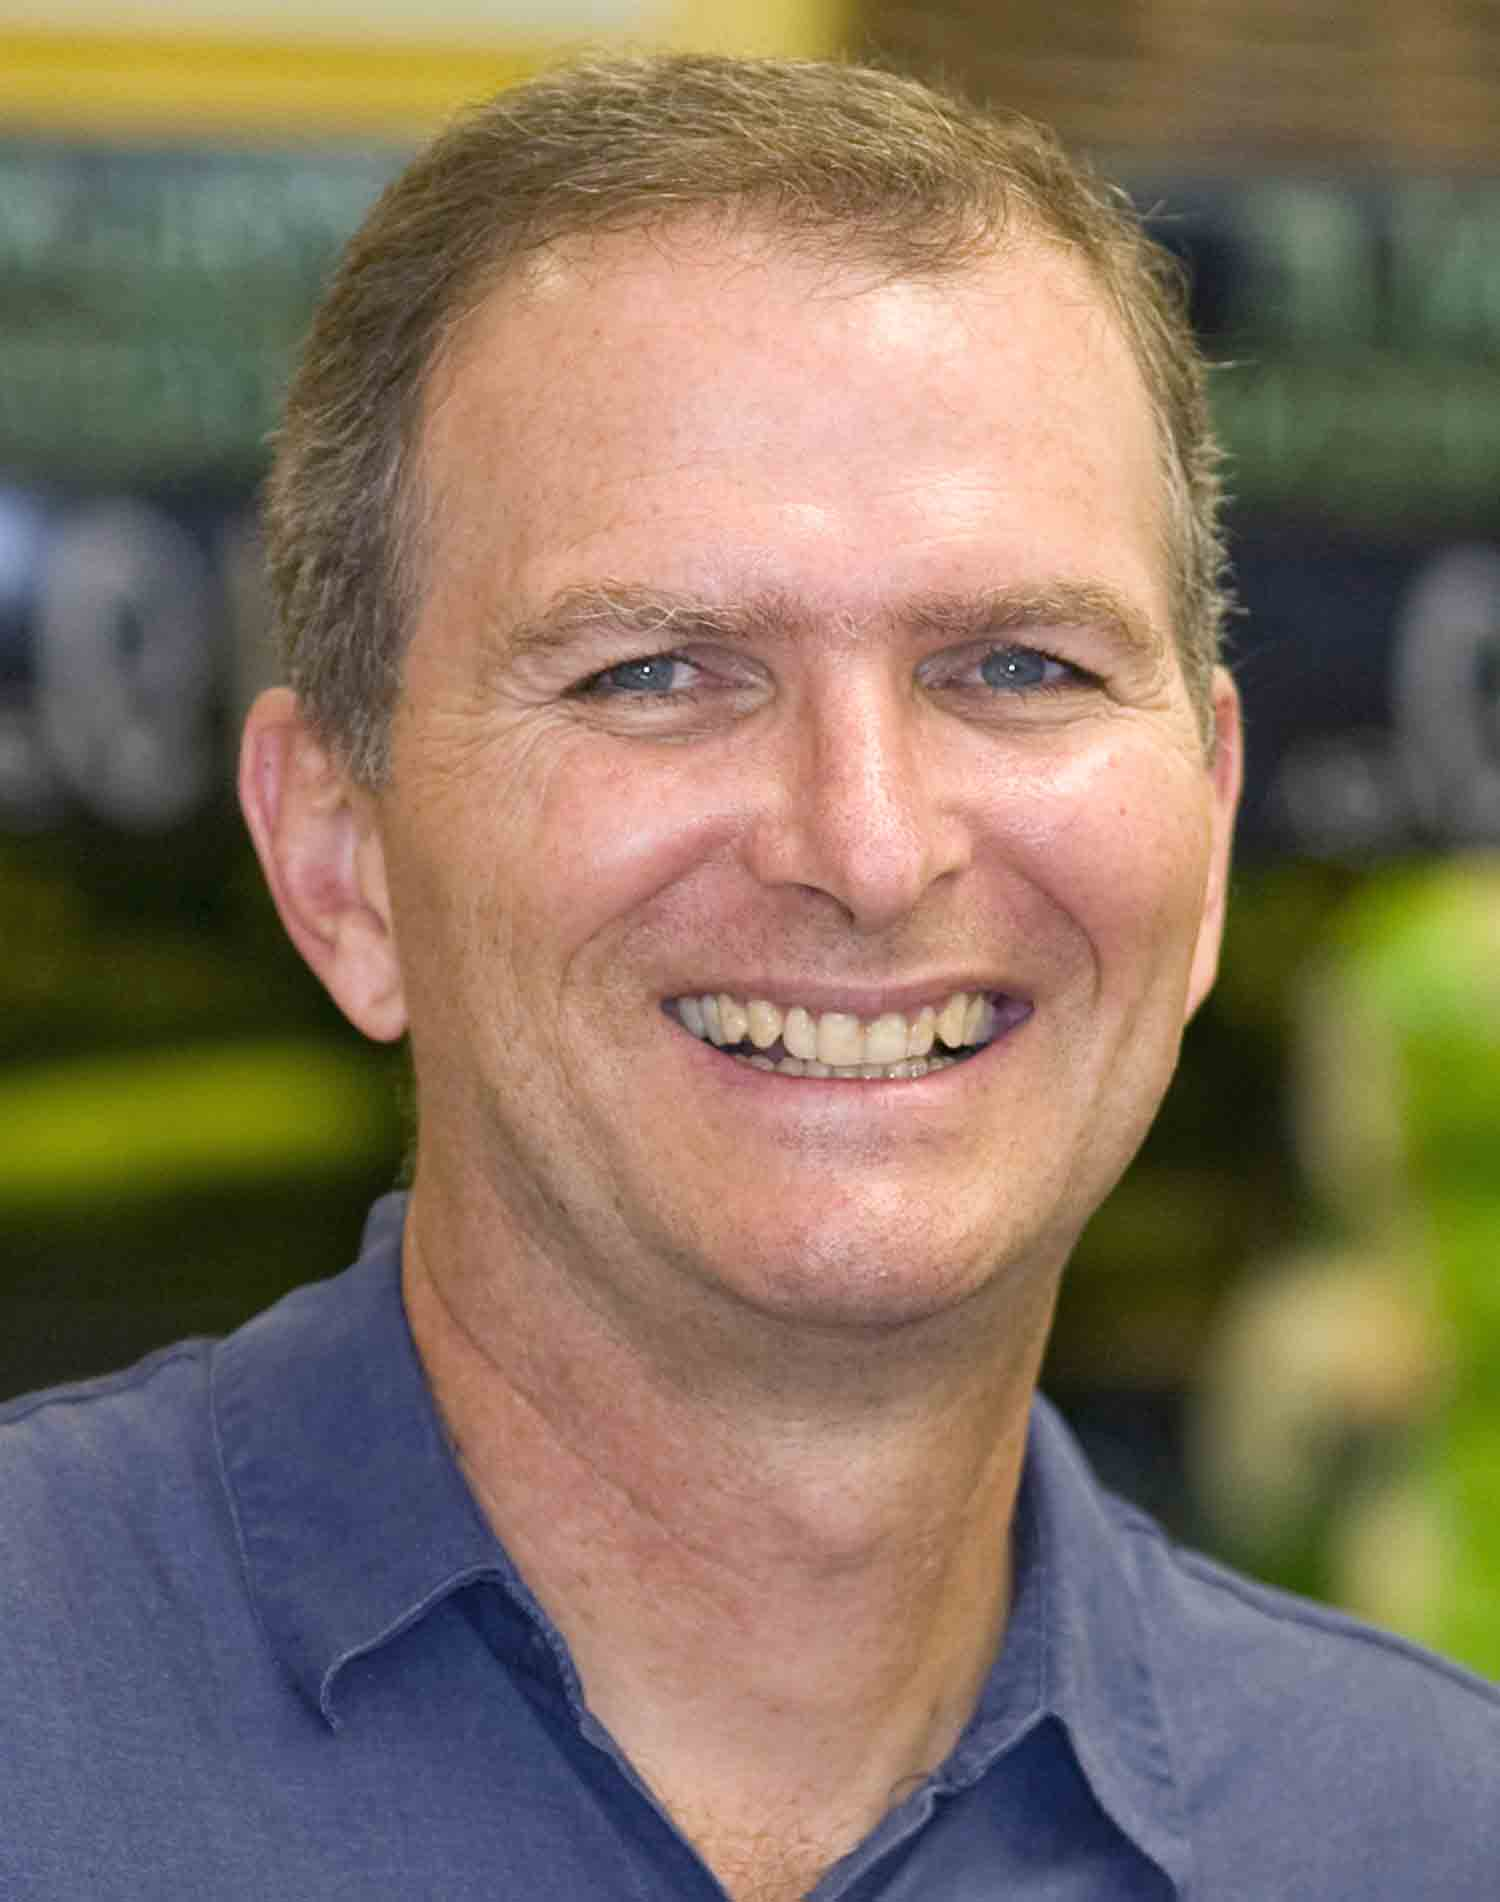 Mark Fergusson